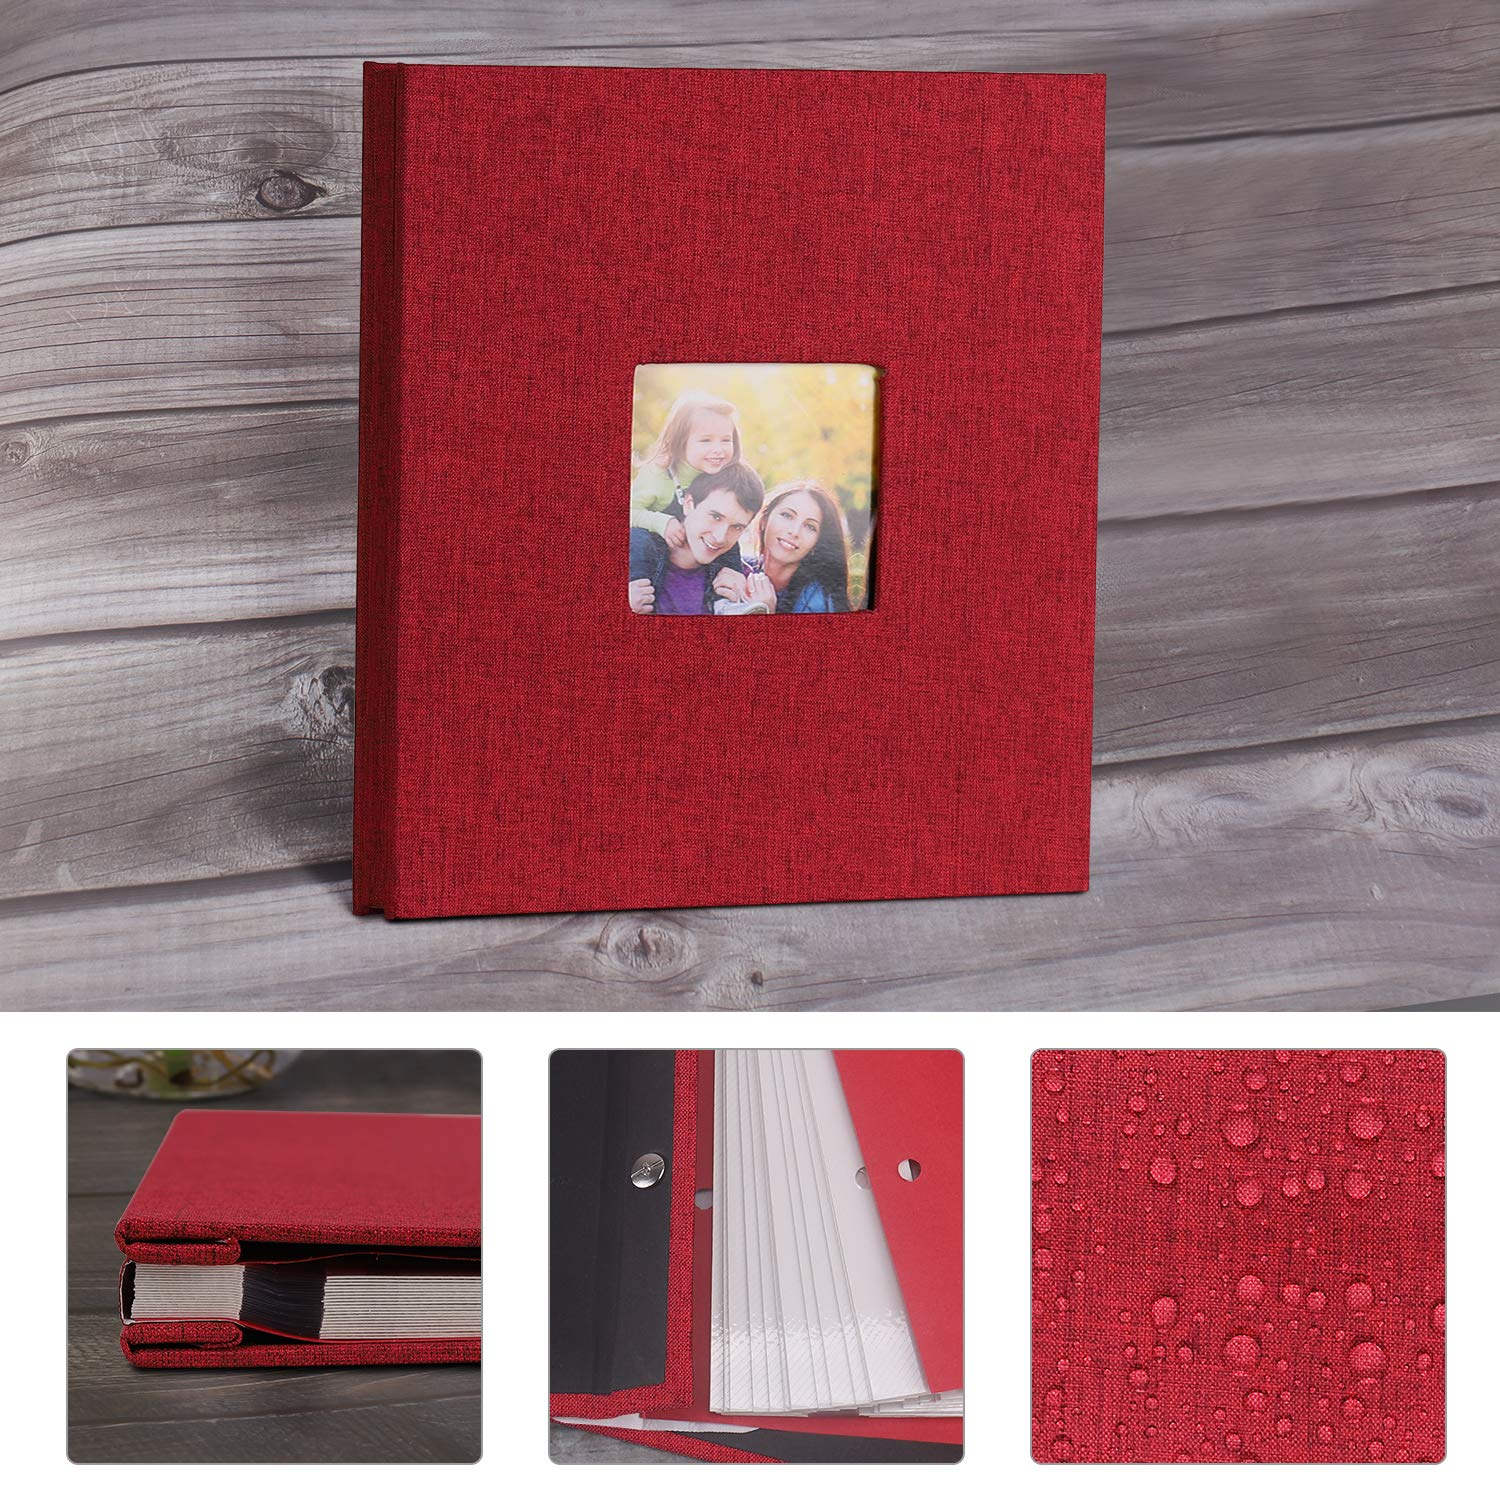 4X6 VACNITE Photo Album Self Adhesive,Scrapbook Album for Wedding//Family Linen Cover DIY Gift Magnetic Photo Book with 40 Sticky Pages Holds 8X10 Blue with Opening Cover 6X8 5X7